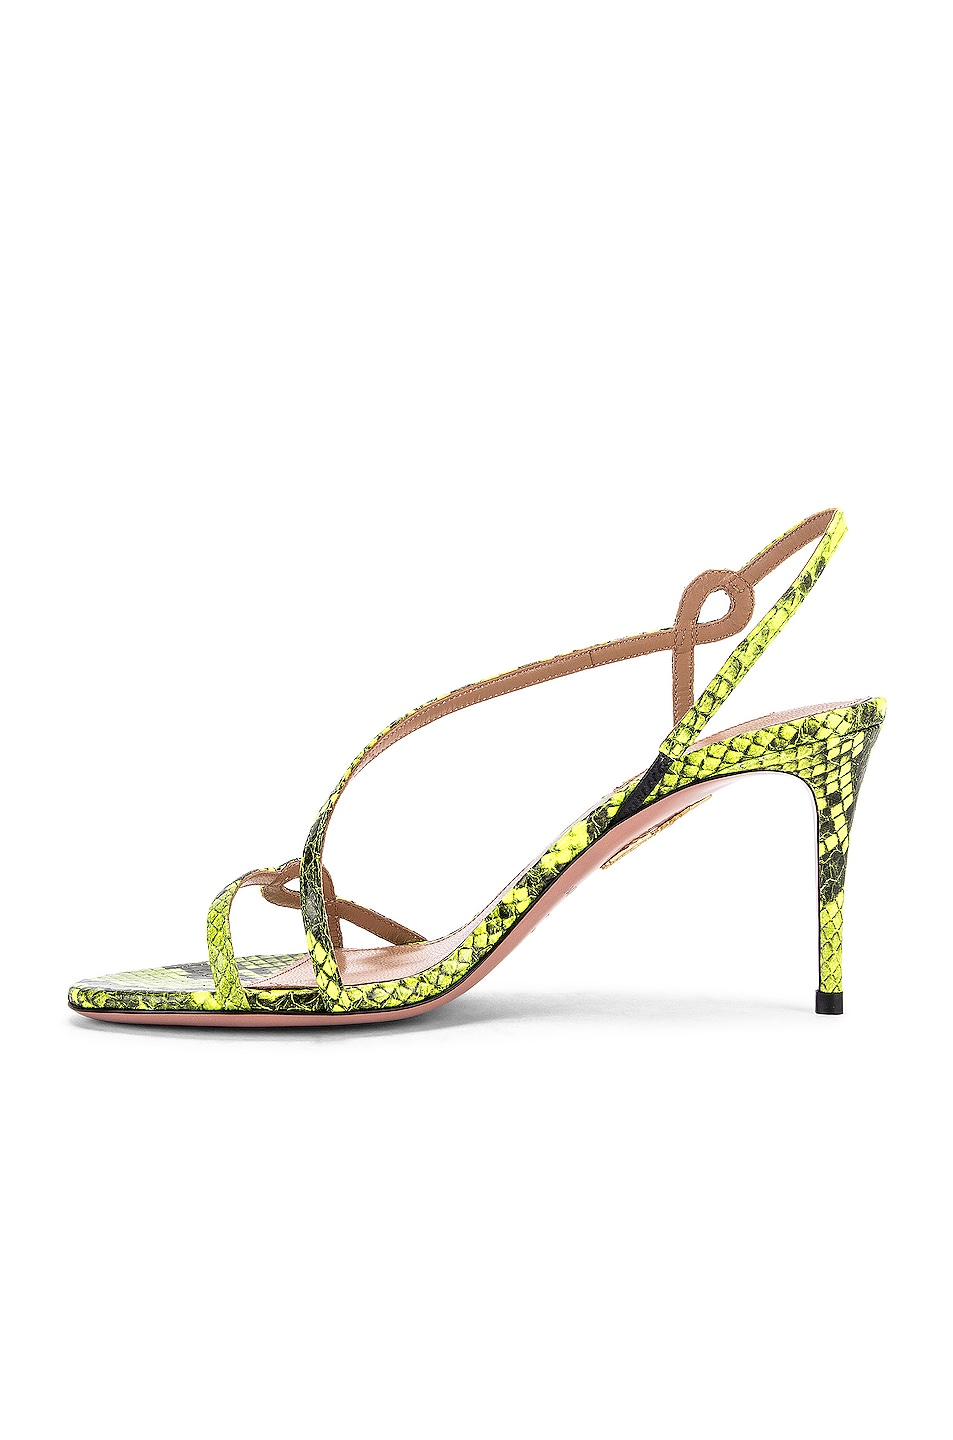 Image 5 of Aquazzura Serpentine 75 Sandal in Acid Green